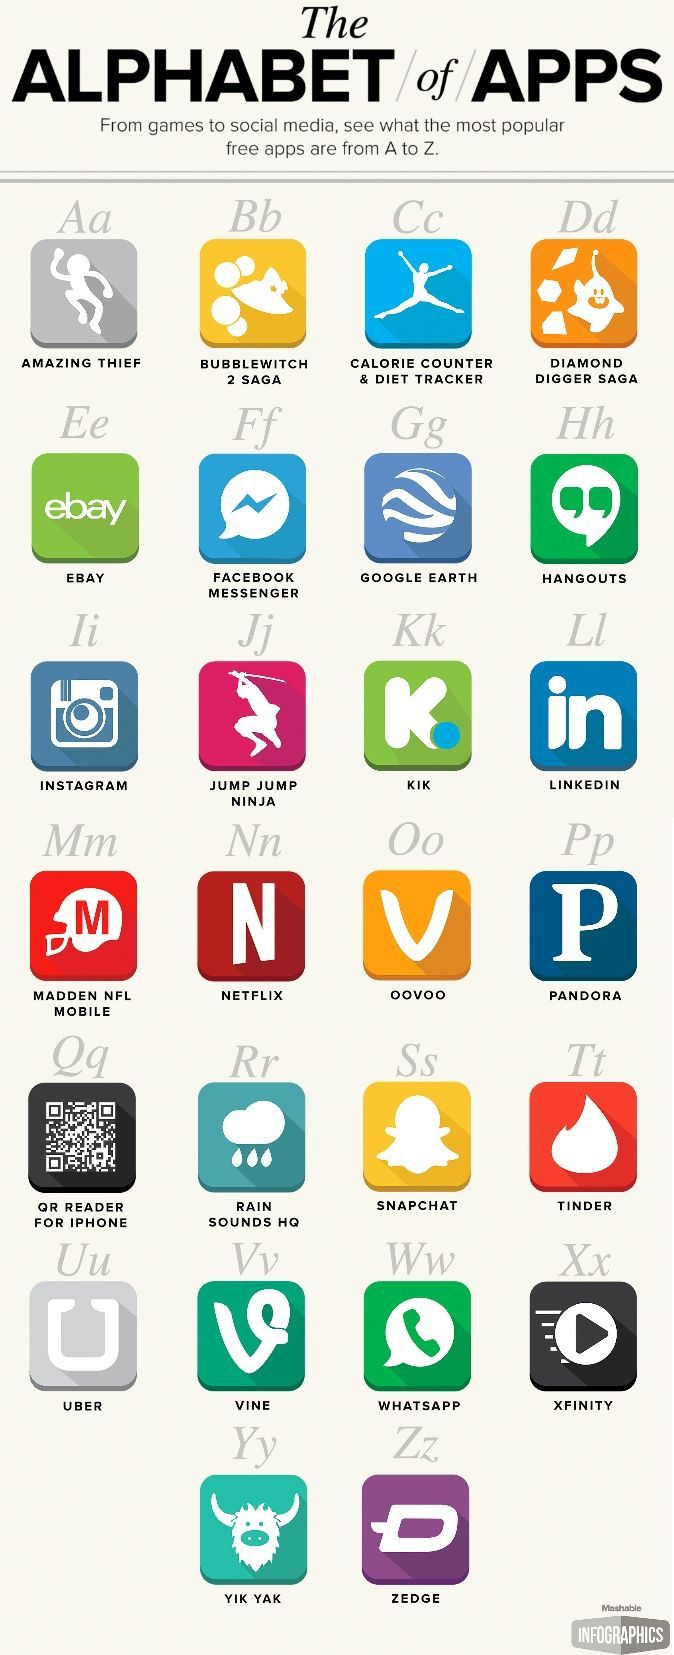 The Most Popular Free Apps From A to Z The alphabet, The